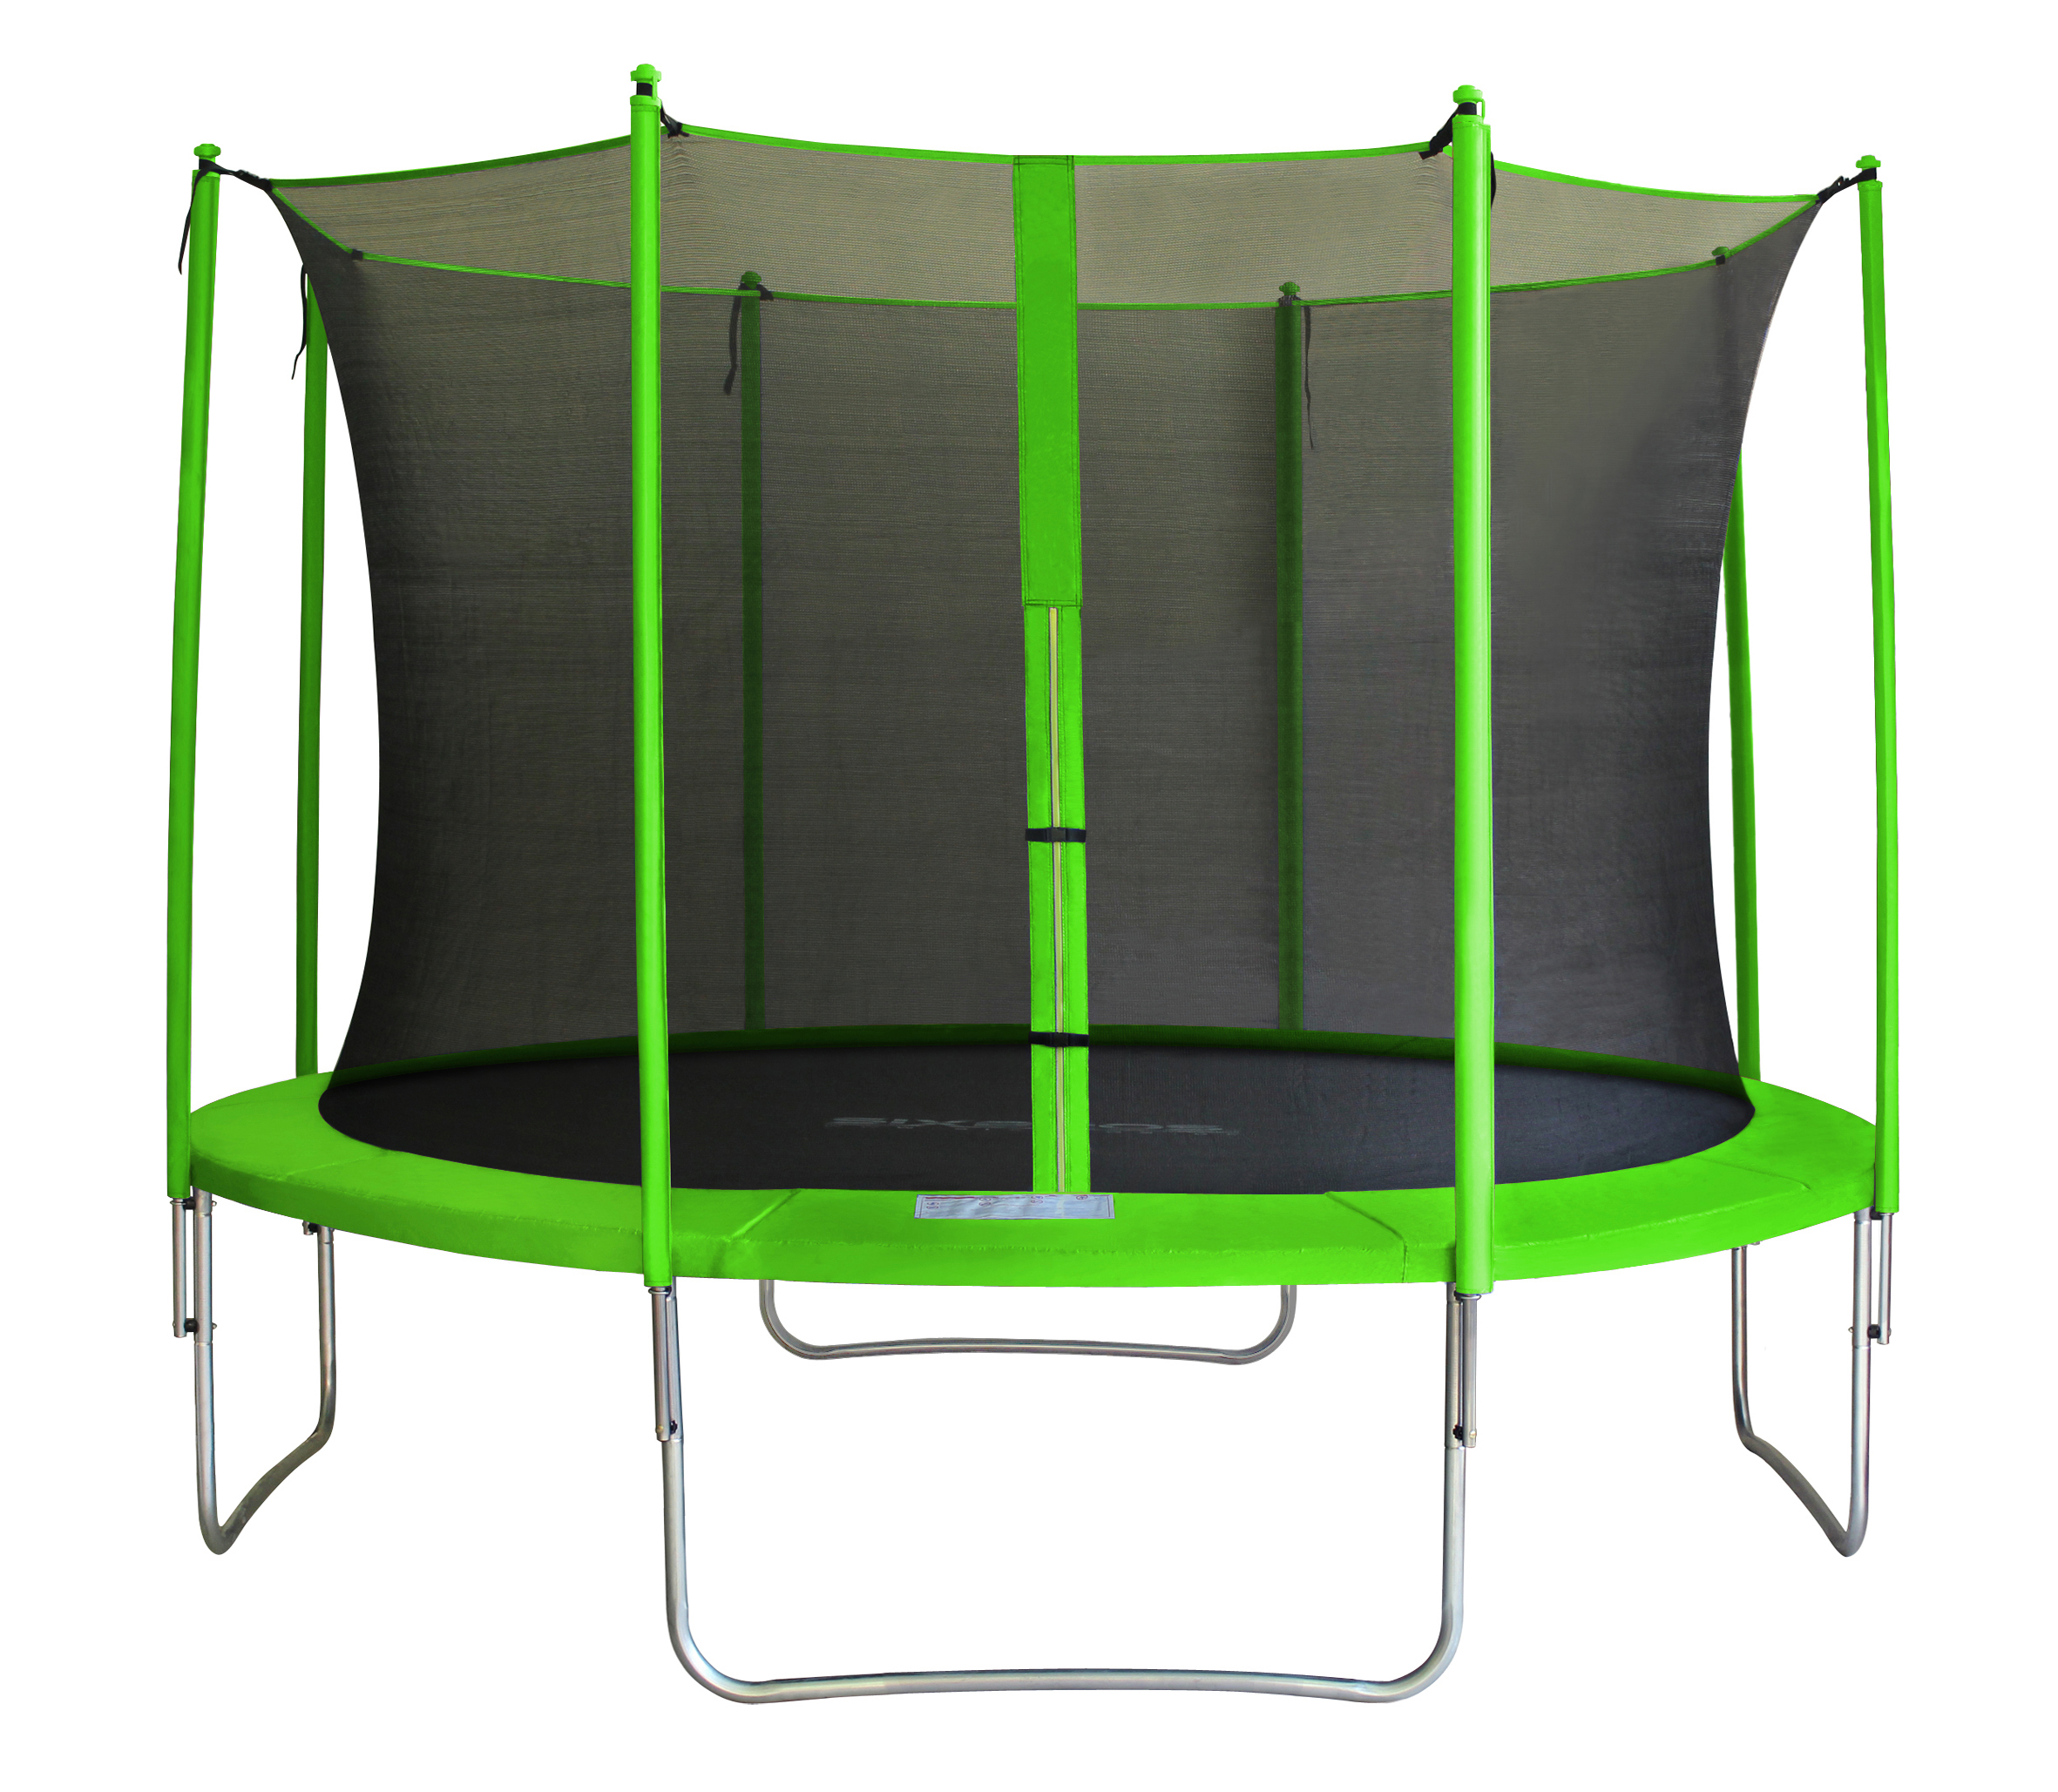 sixbros sixjump trampoline de jardin filet a l int rieur 185 460cm ebay. Black Bedroom Furniture Sets. Home Design Ideas